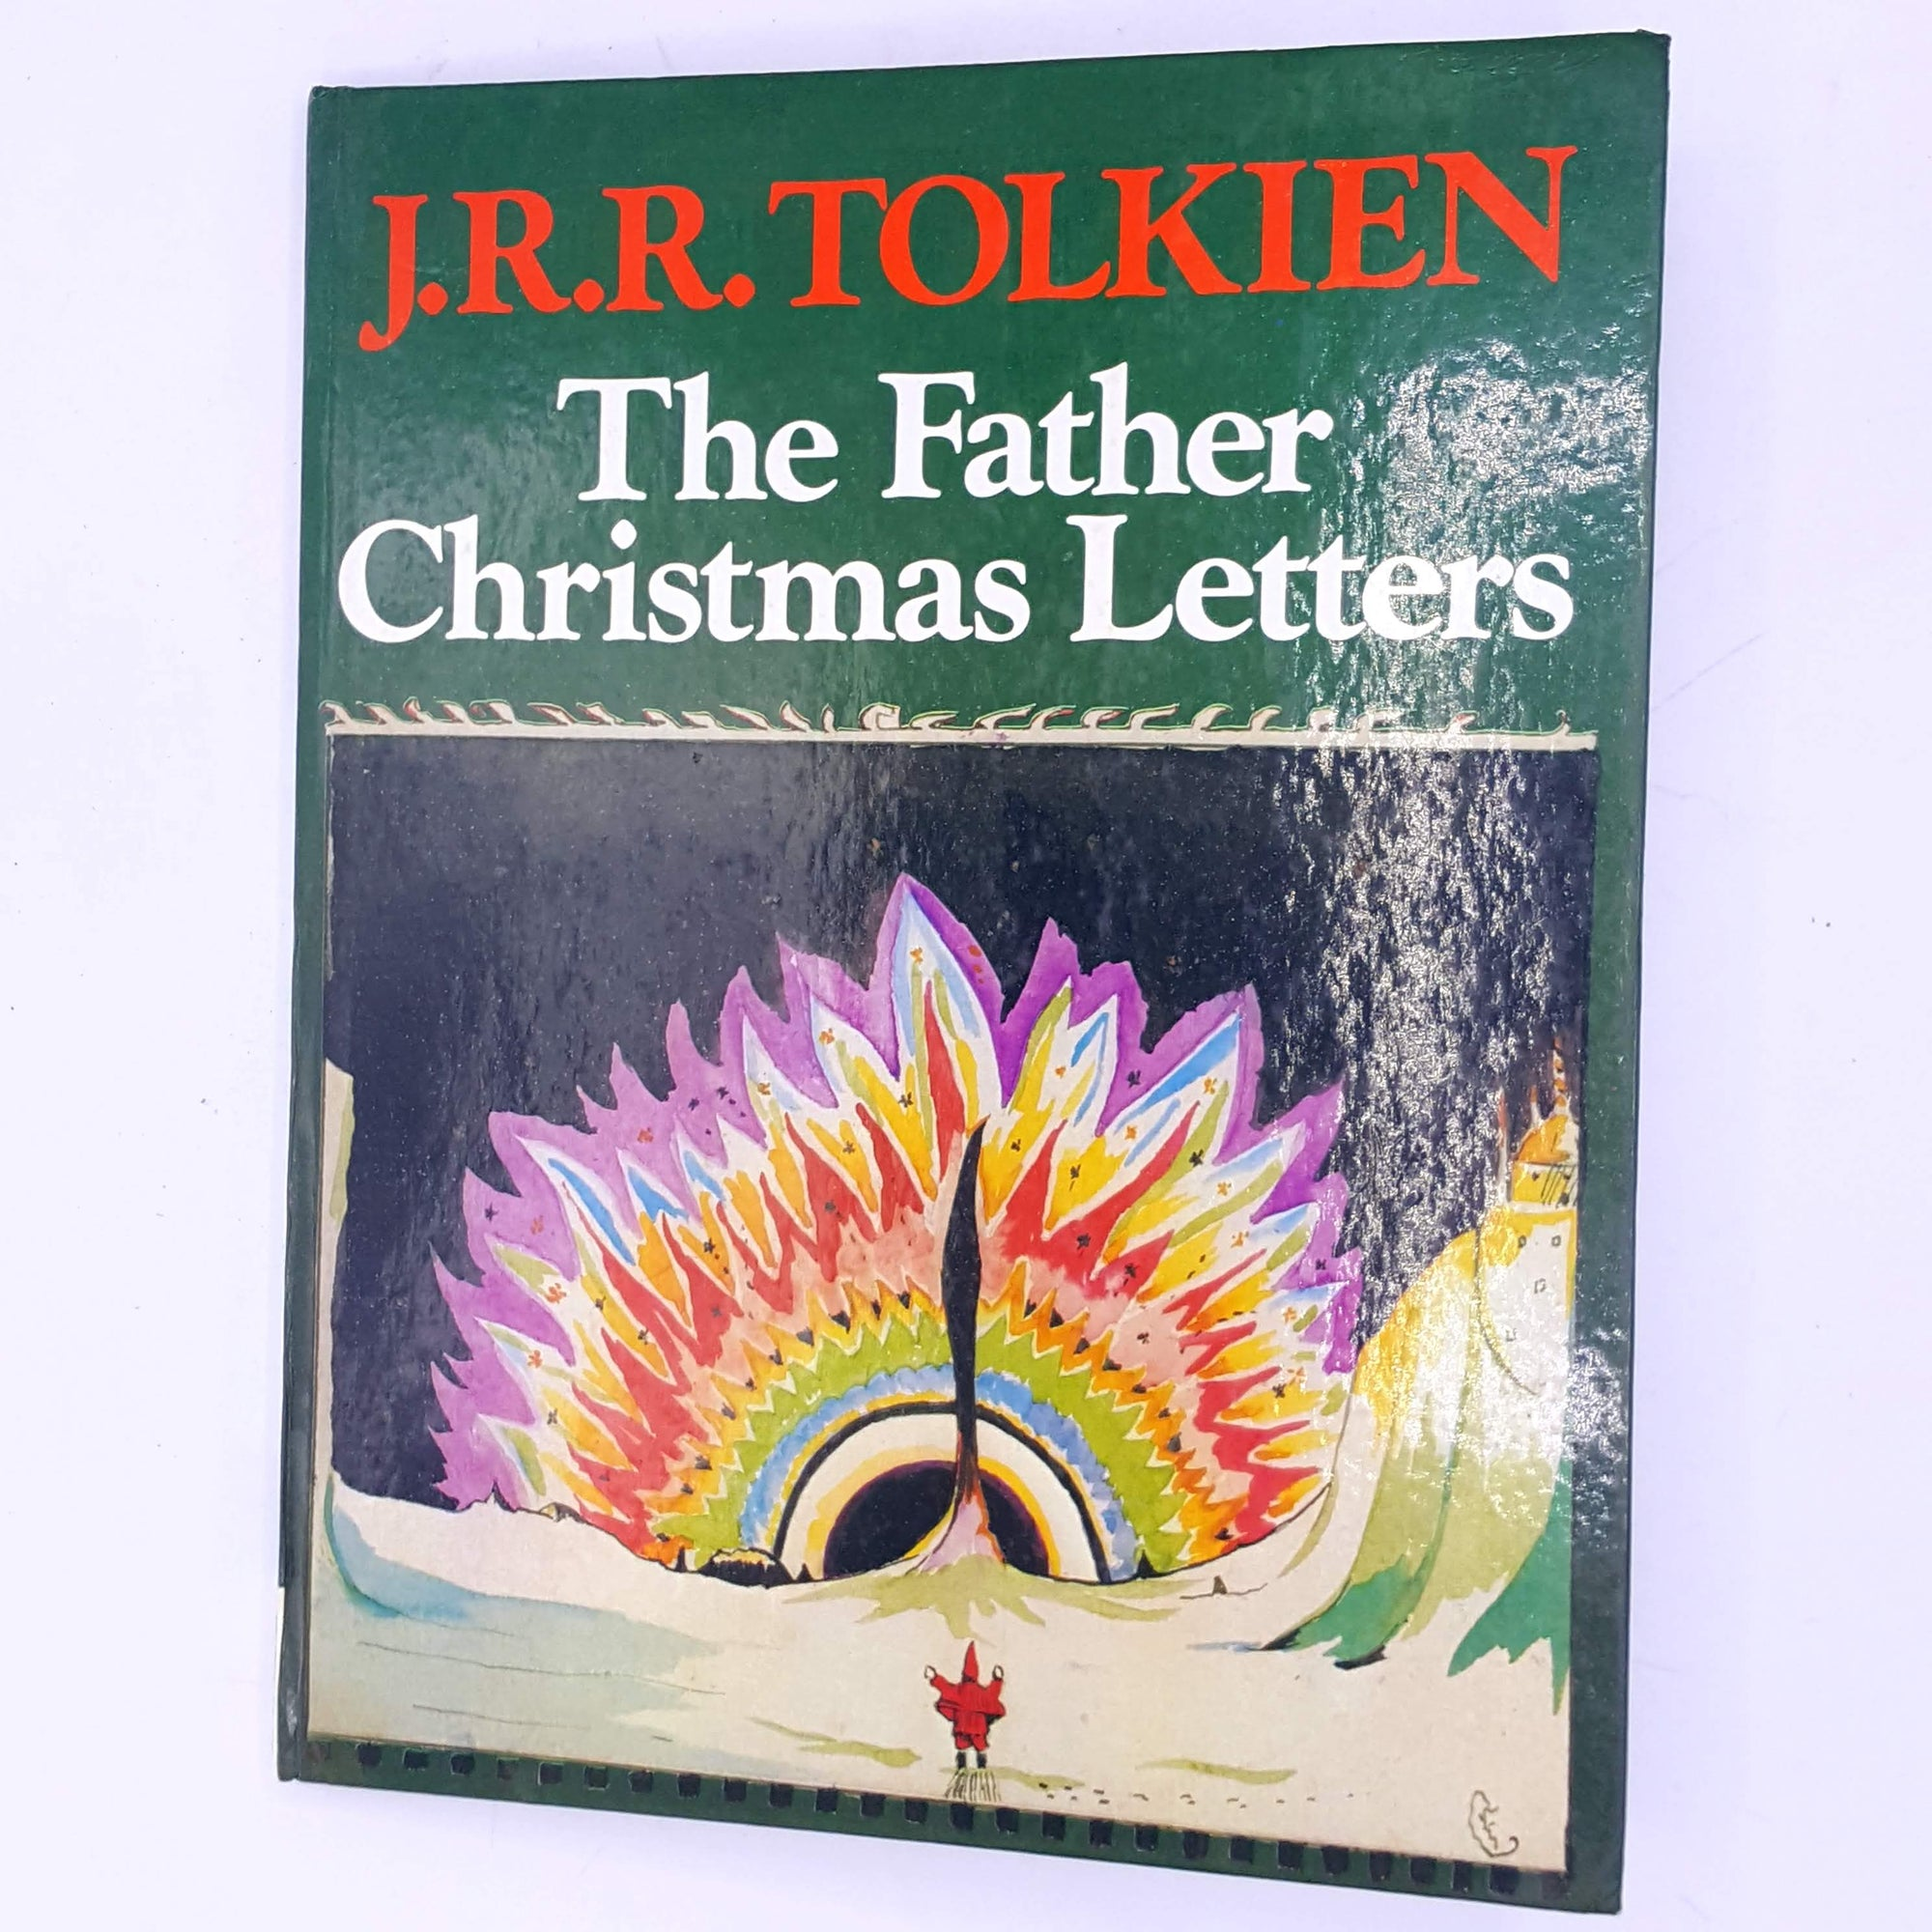 J.R.R. Tolkien - The Father Christmas Letters